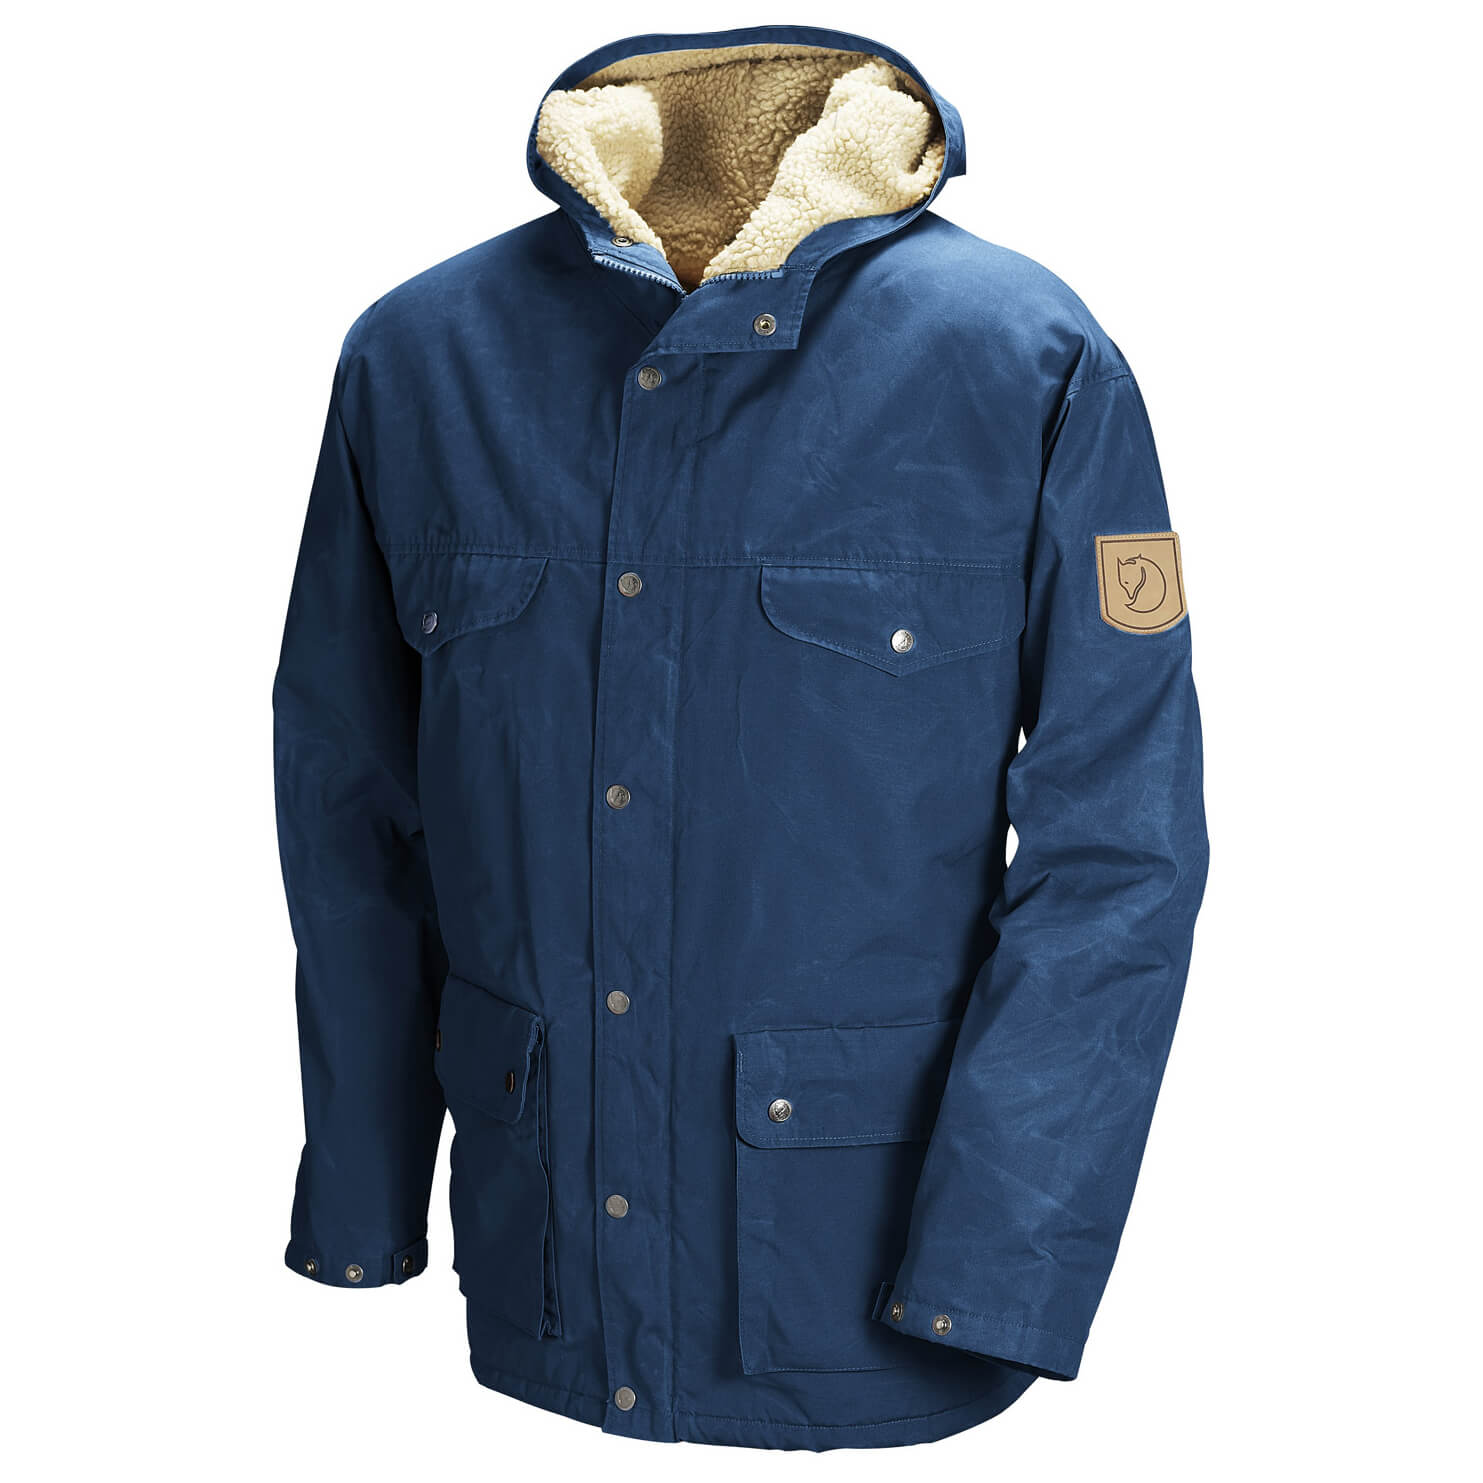 huge selection of 5f04f bbf0a Fjällräven - Greenland Winter Jacket - Winterjacke